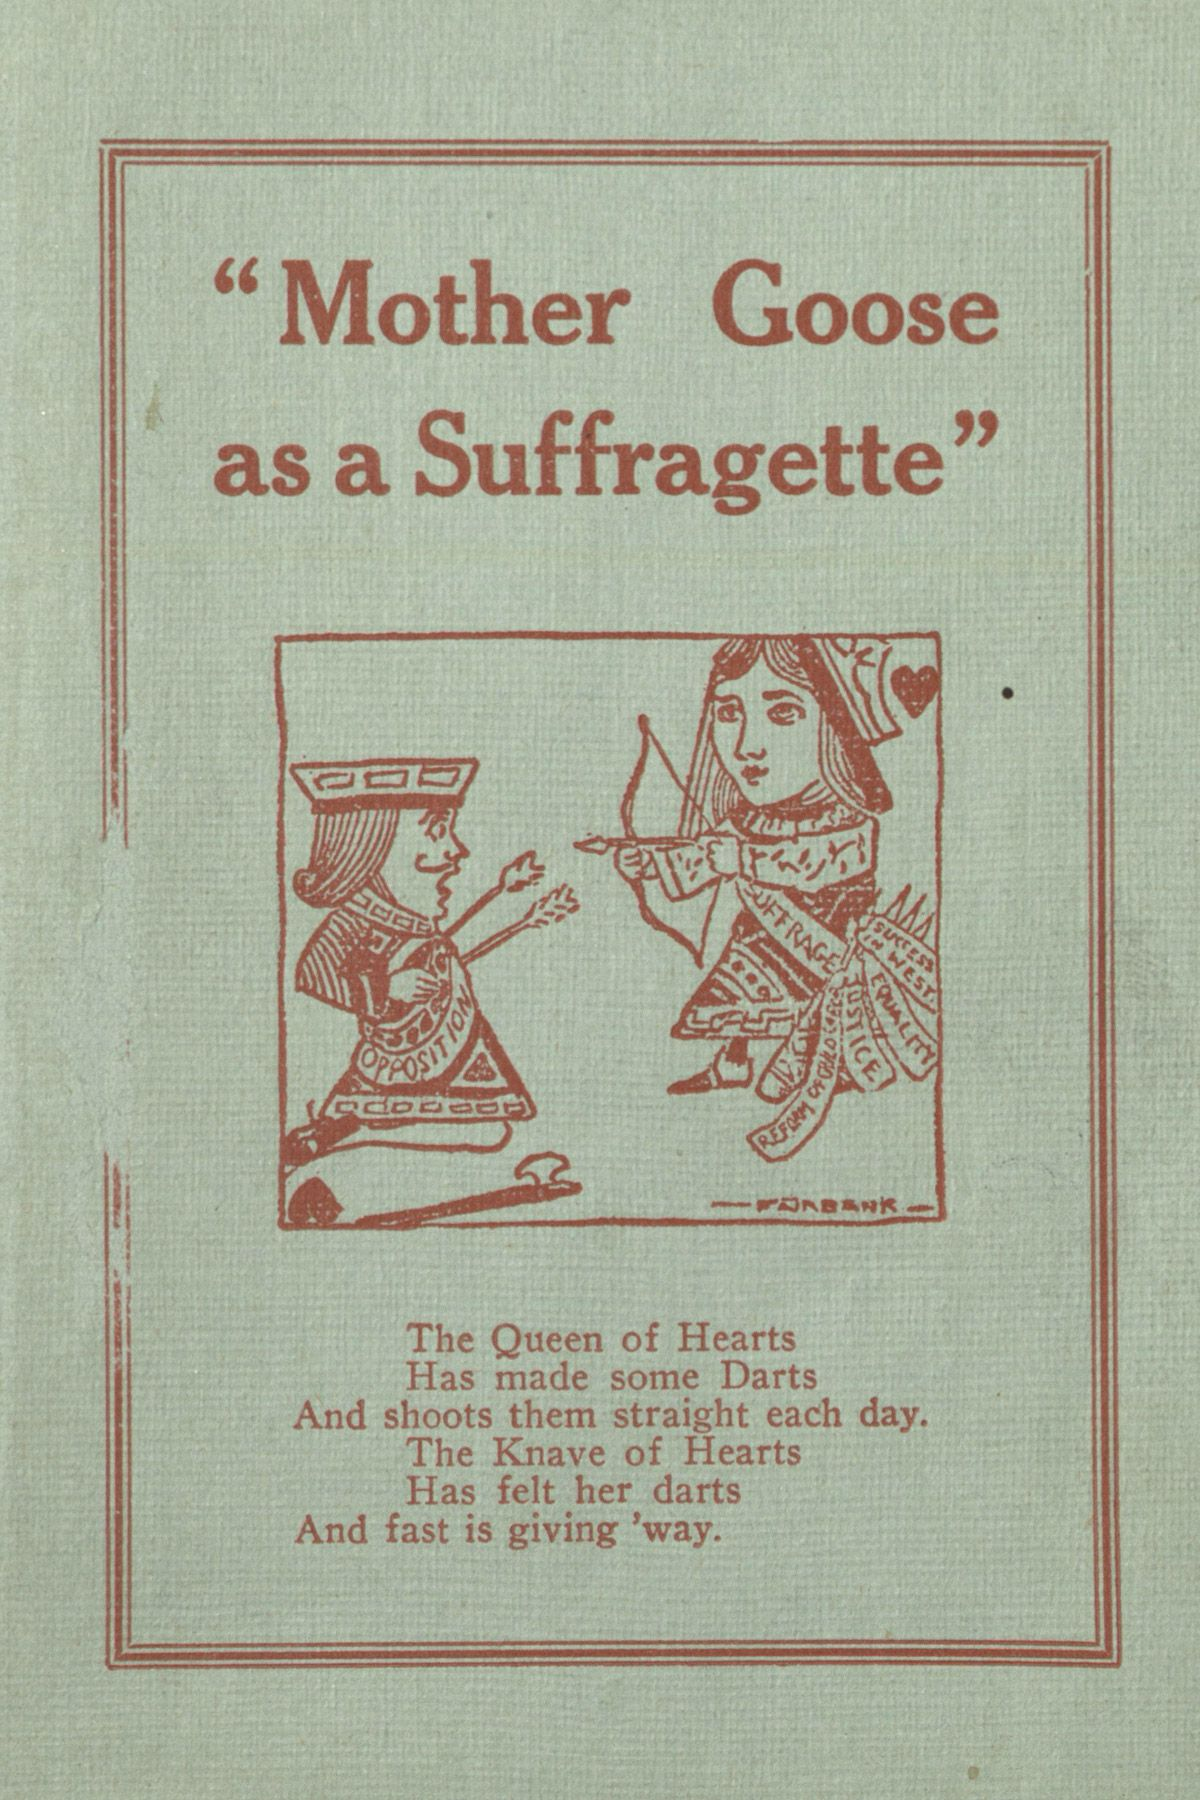 Roses are red, violets are blue, these suffragette poems ring all too true